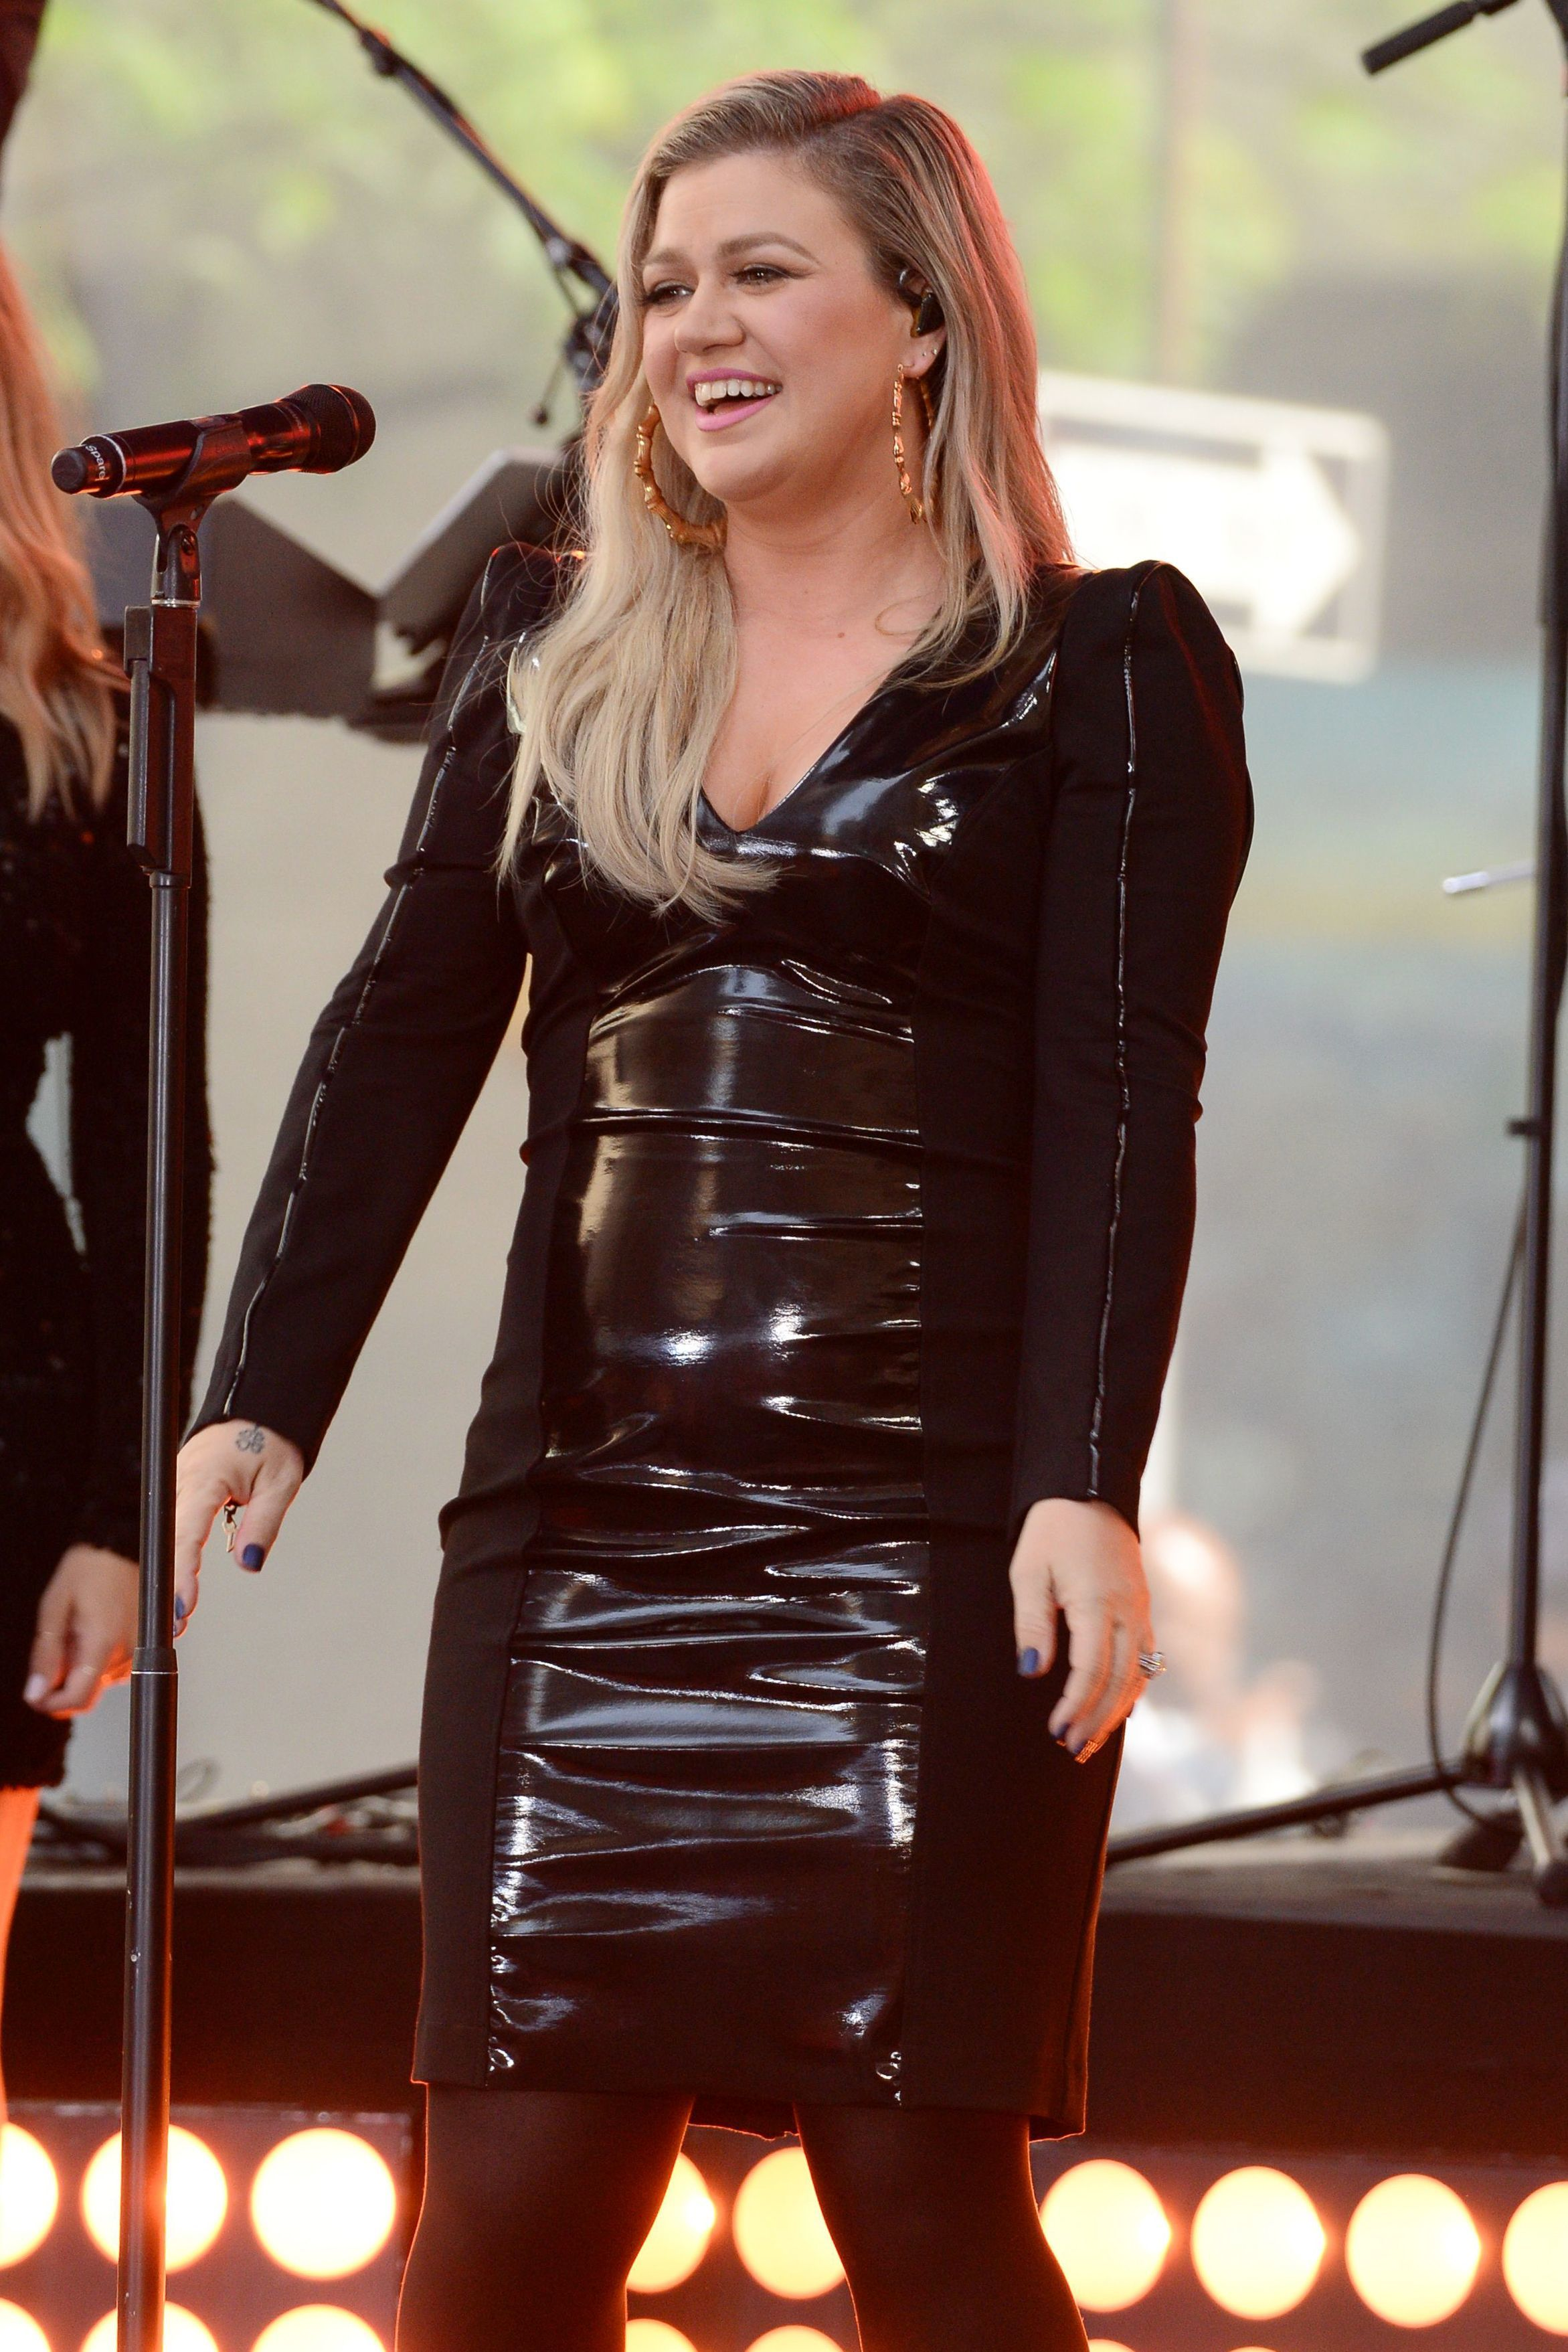 How Kelly Clarkson lost nearly 40 pounds